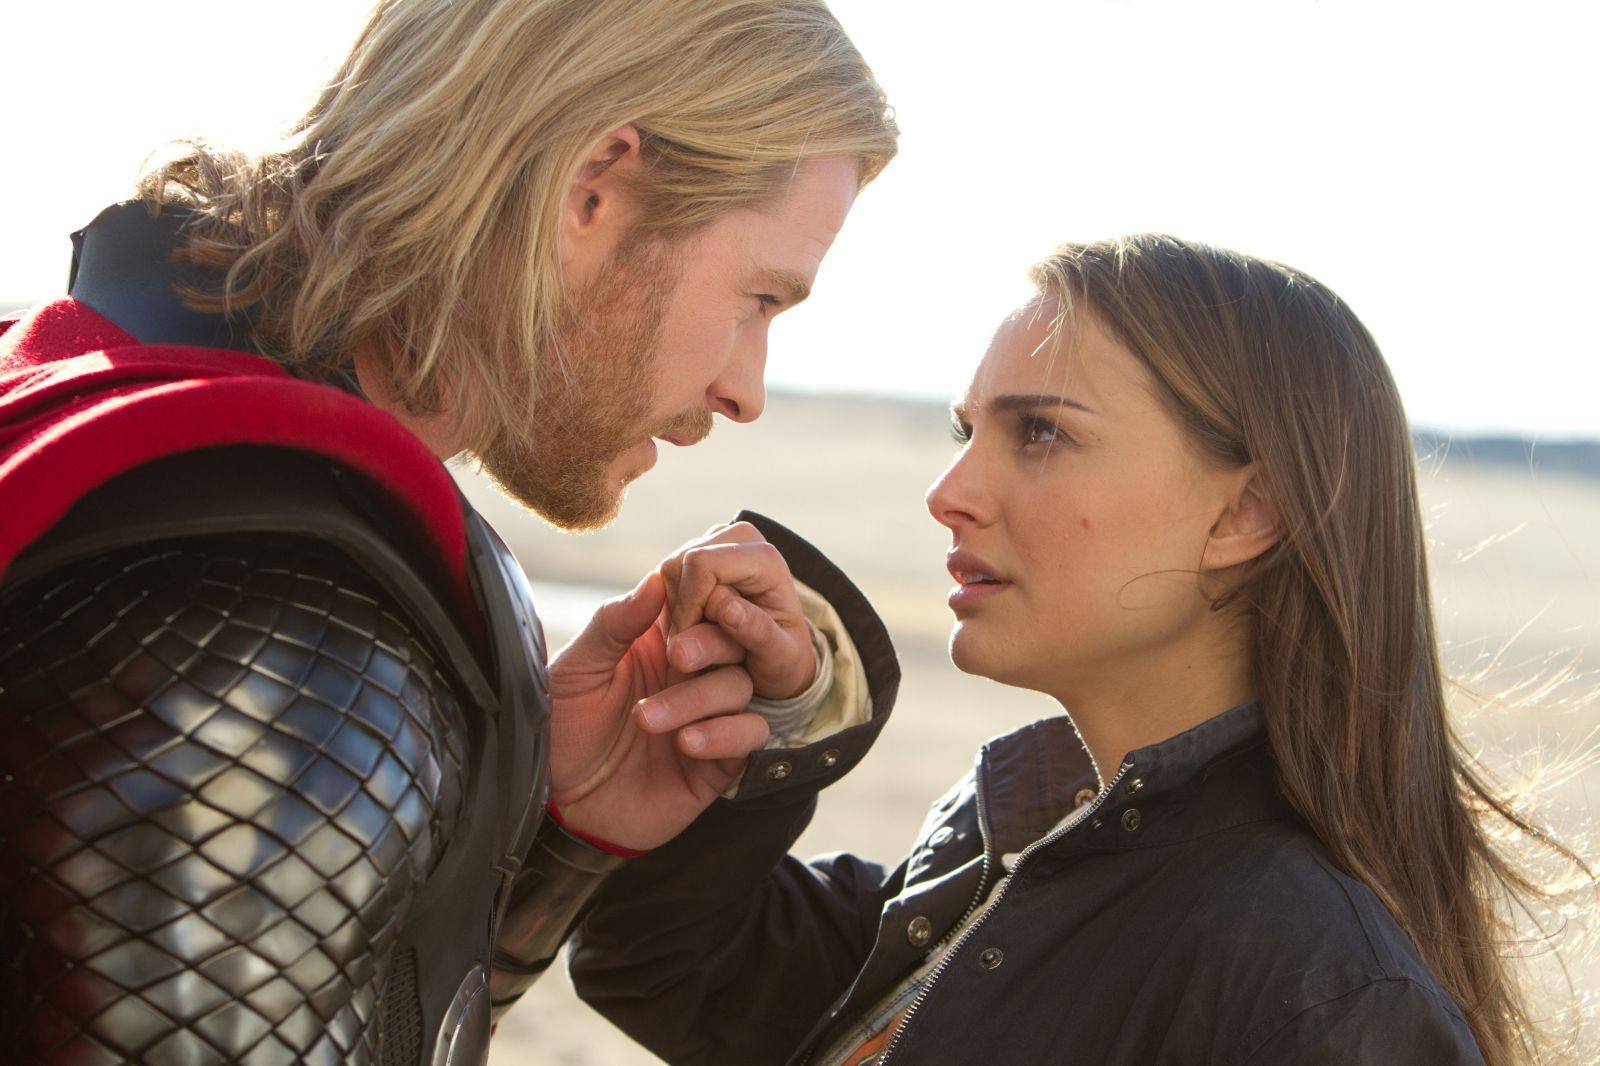 Thor and Jane Foster before Thor dumped Jane for some poptarts.